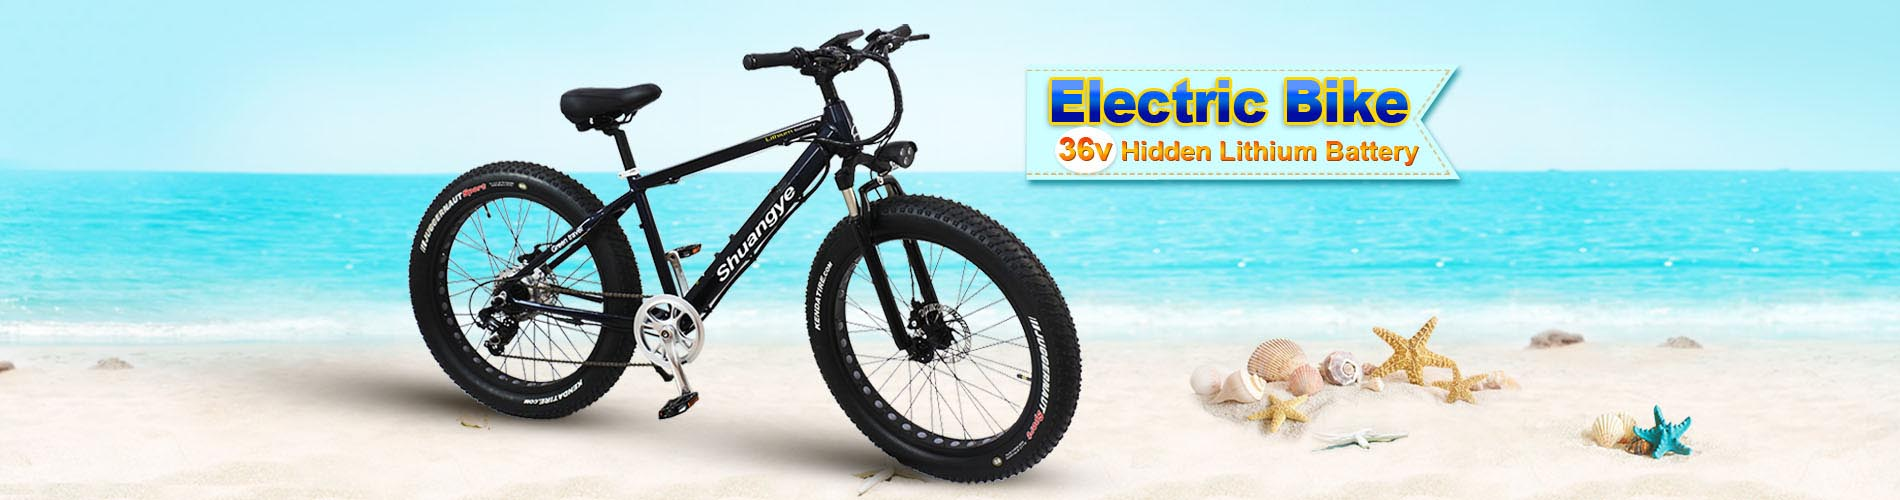 Fashion pas assisted electric bikes for Morocco